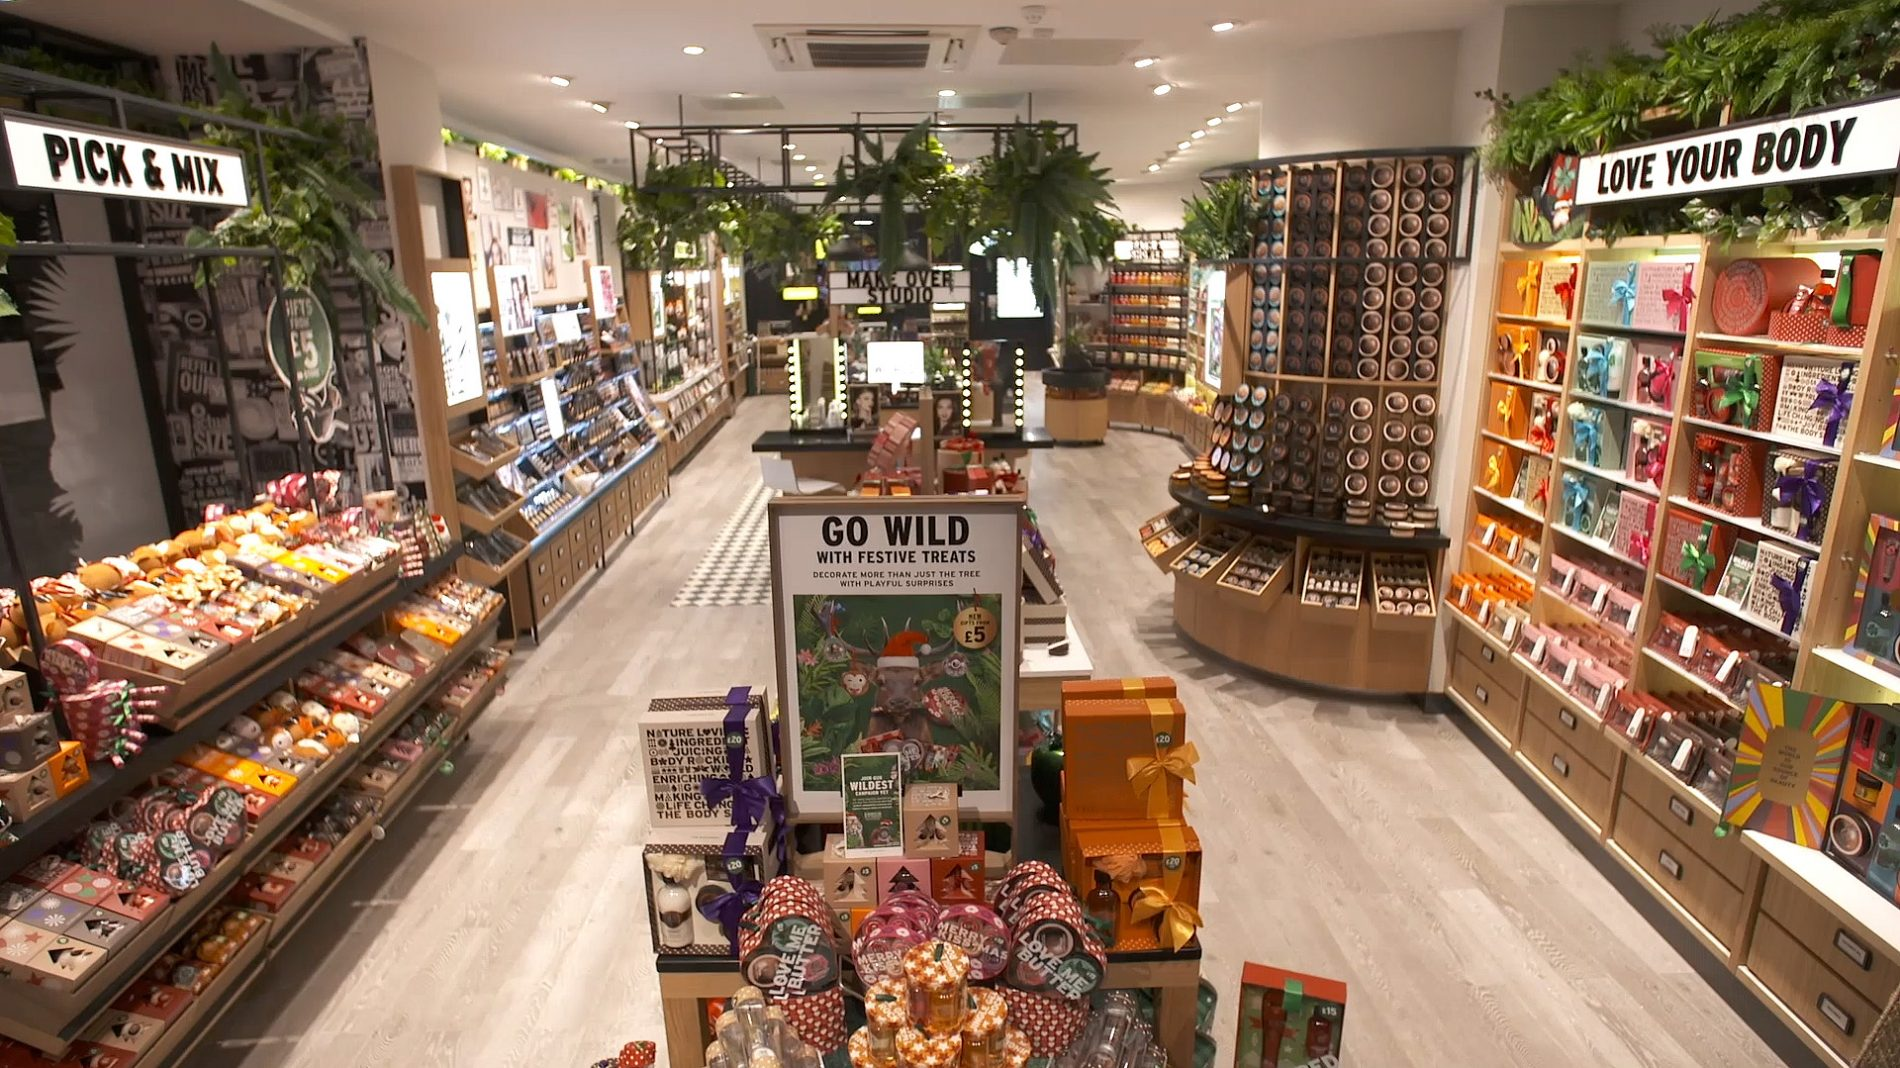 retail design of the body shop store with shelves full of beauty products